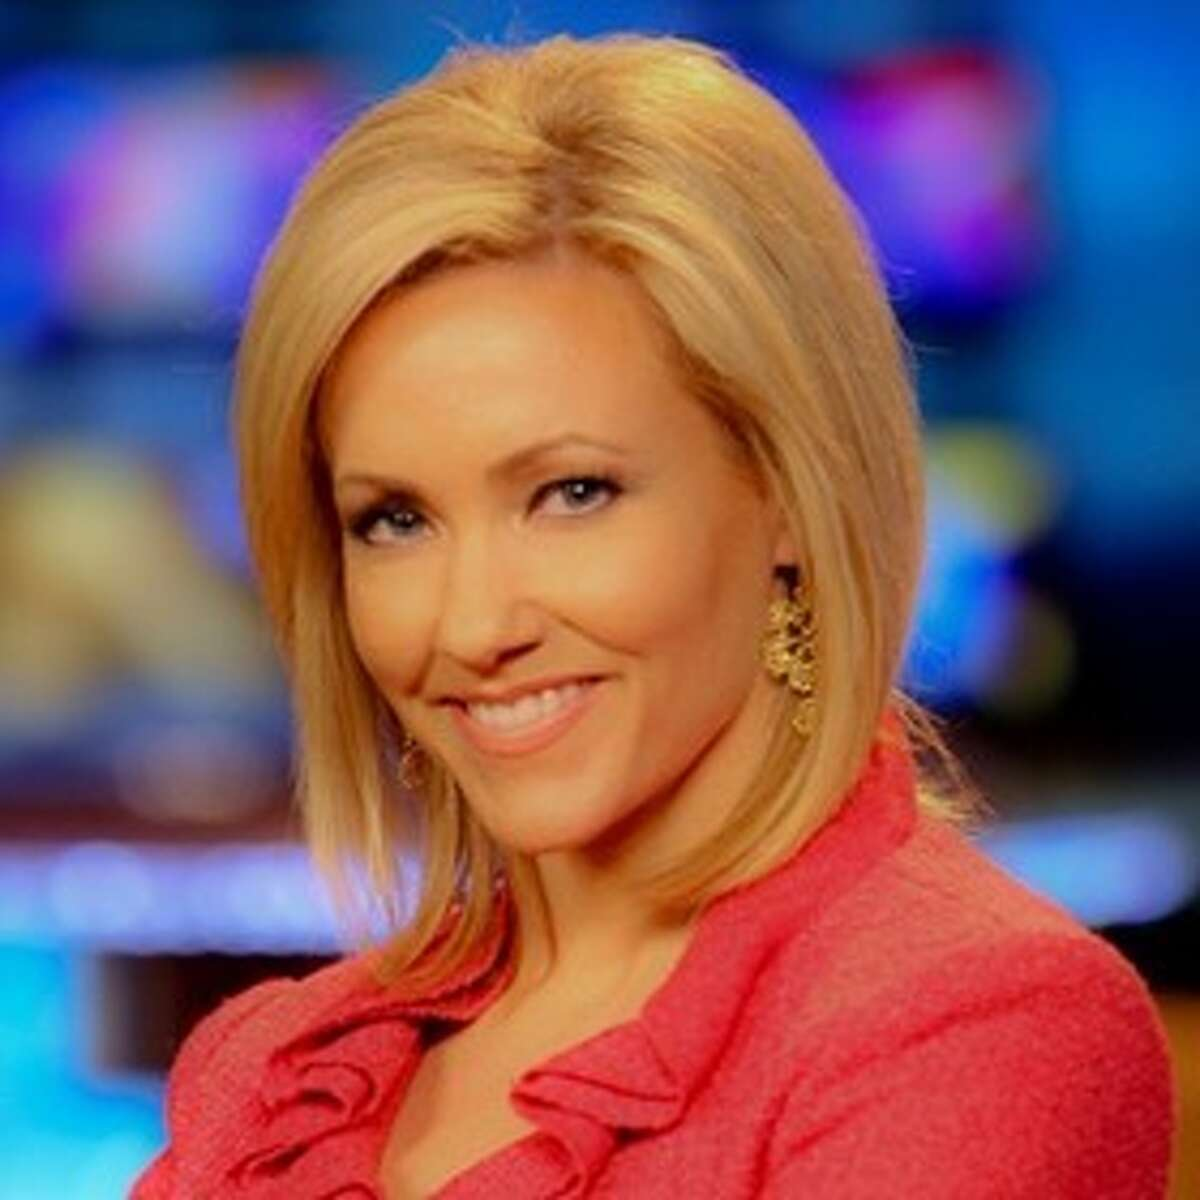 WOAI co-anchor Delaine Mathieu